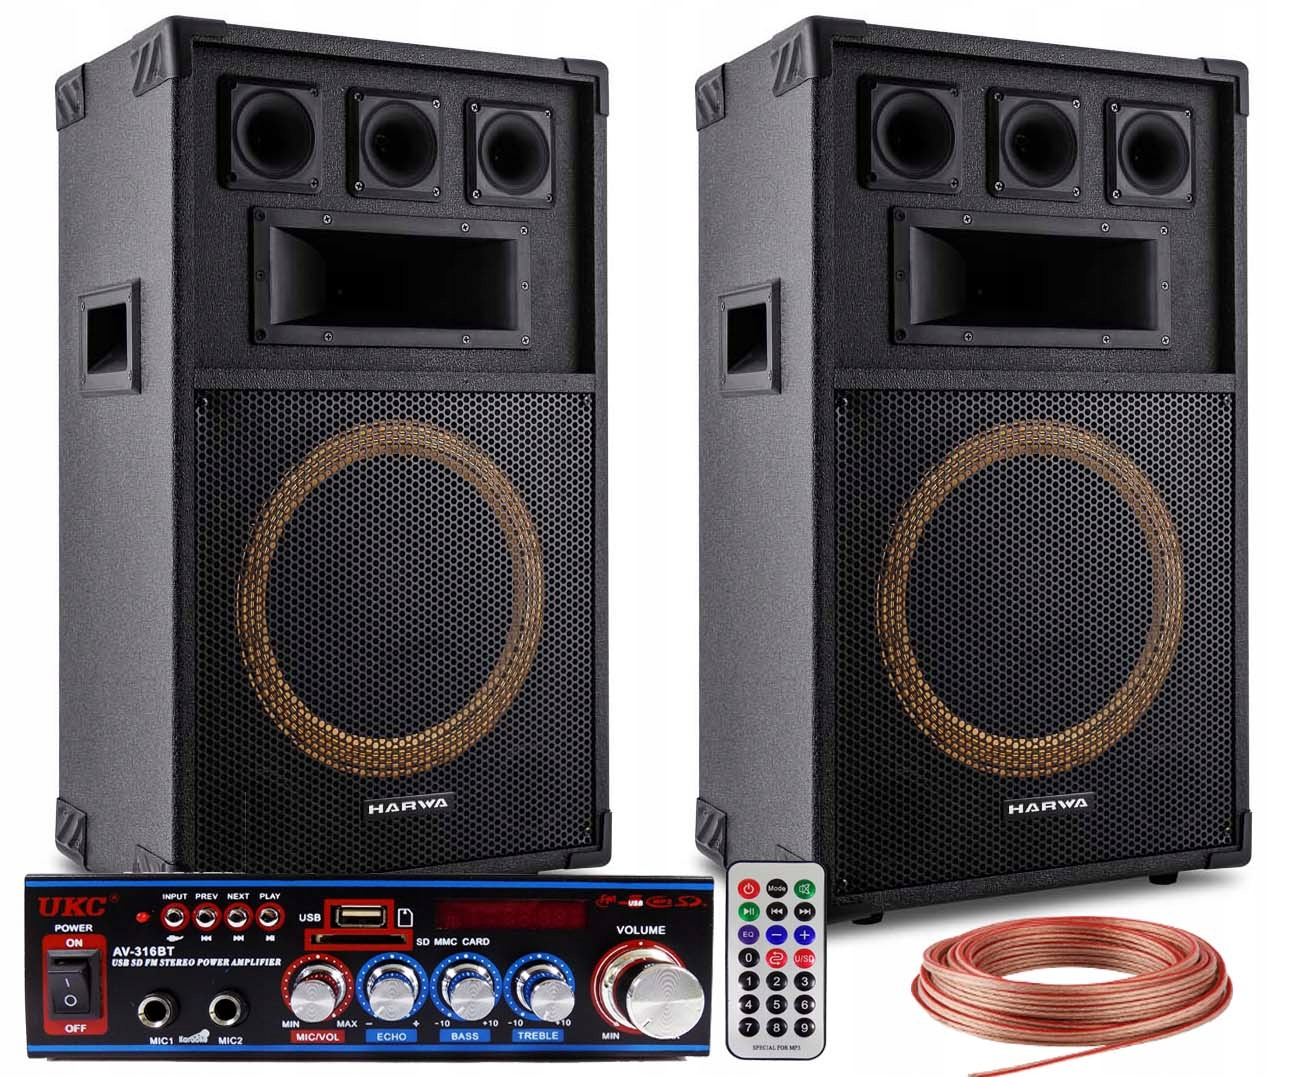 Item 2 POWERFUL SPEAKERS ADAPTIVE AMPLIFIER MP3 USB TV/PC